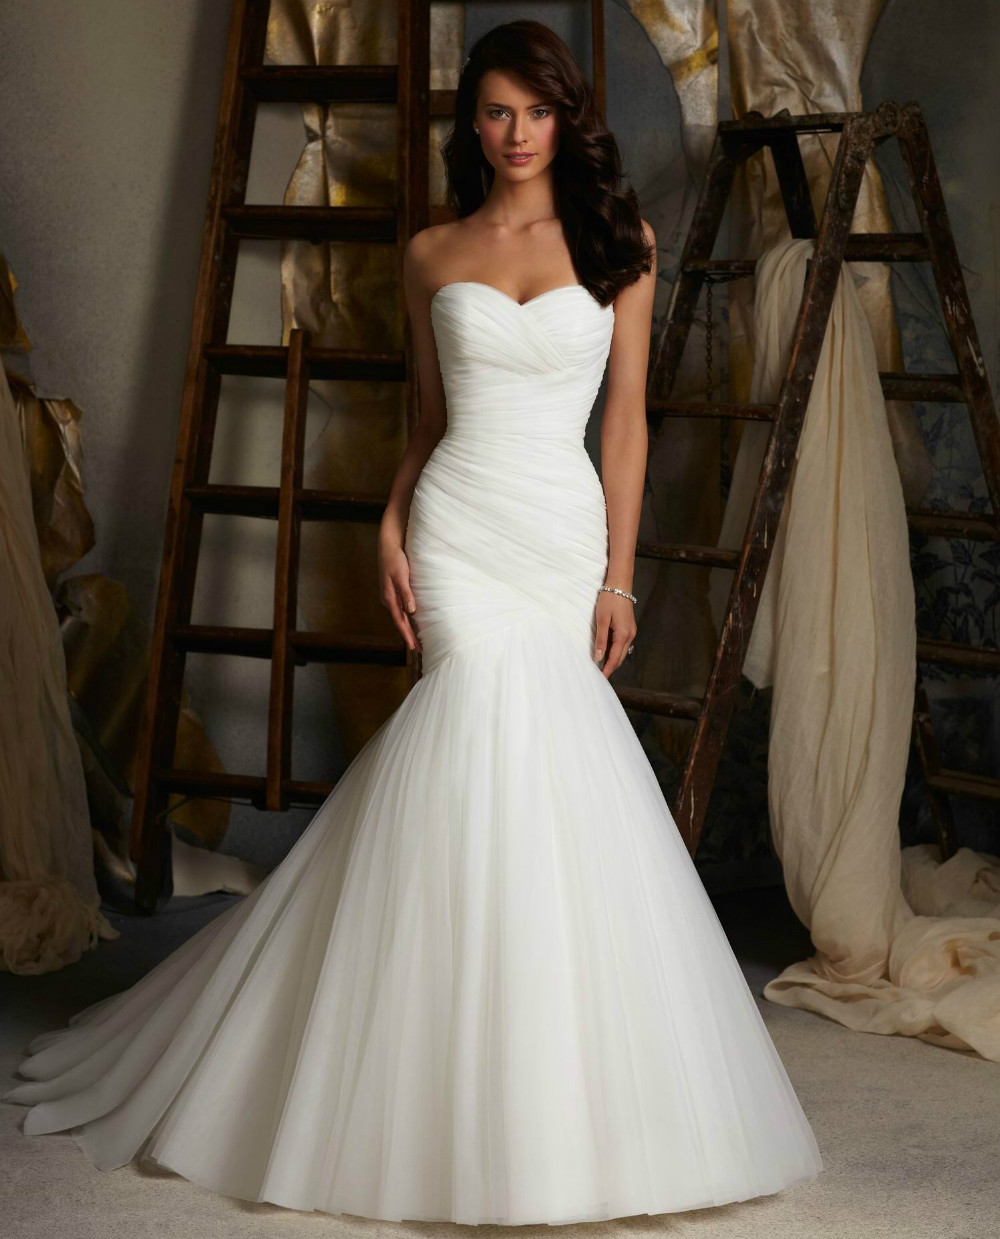 2015 New Design Ruched Strapless Mermaid Tulle Wedding Dresses White Ivory Tulle Floor length Lace Up Bridal Gowns In Stock(China (Mainland))